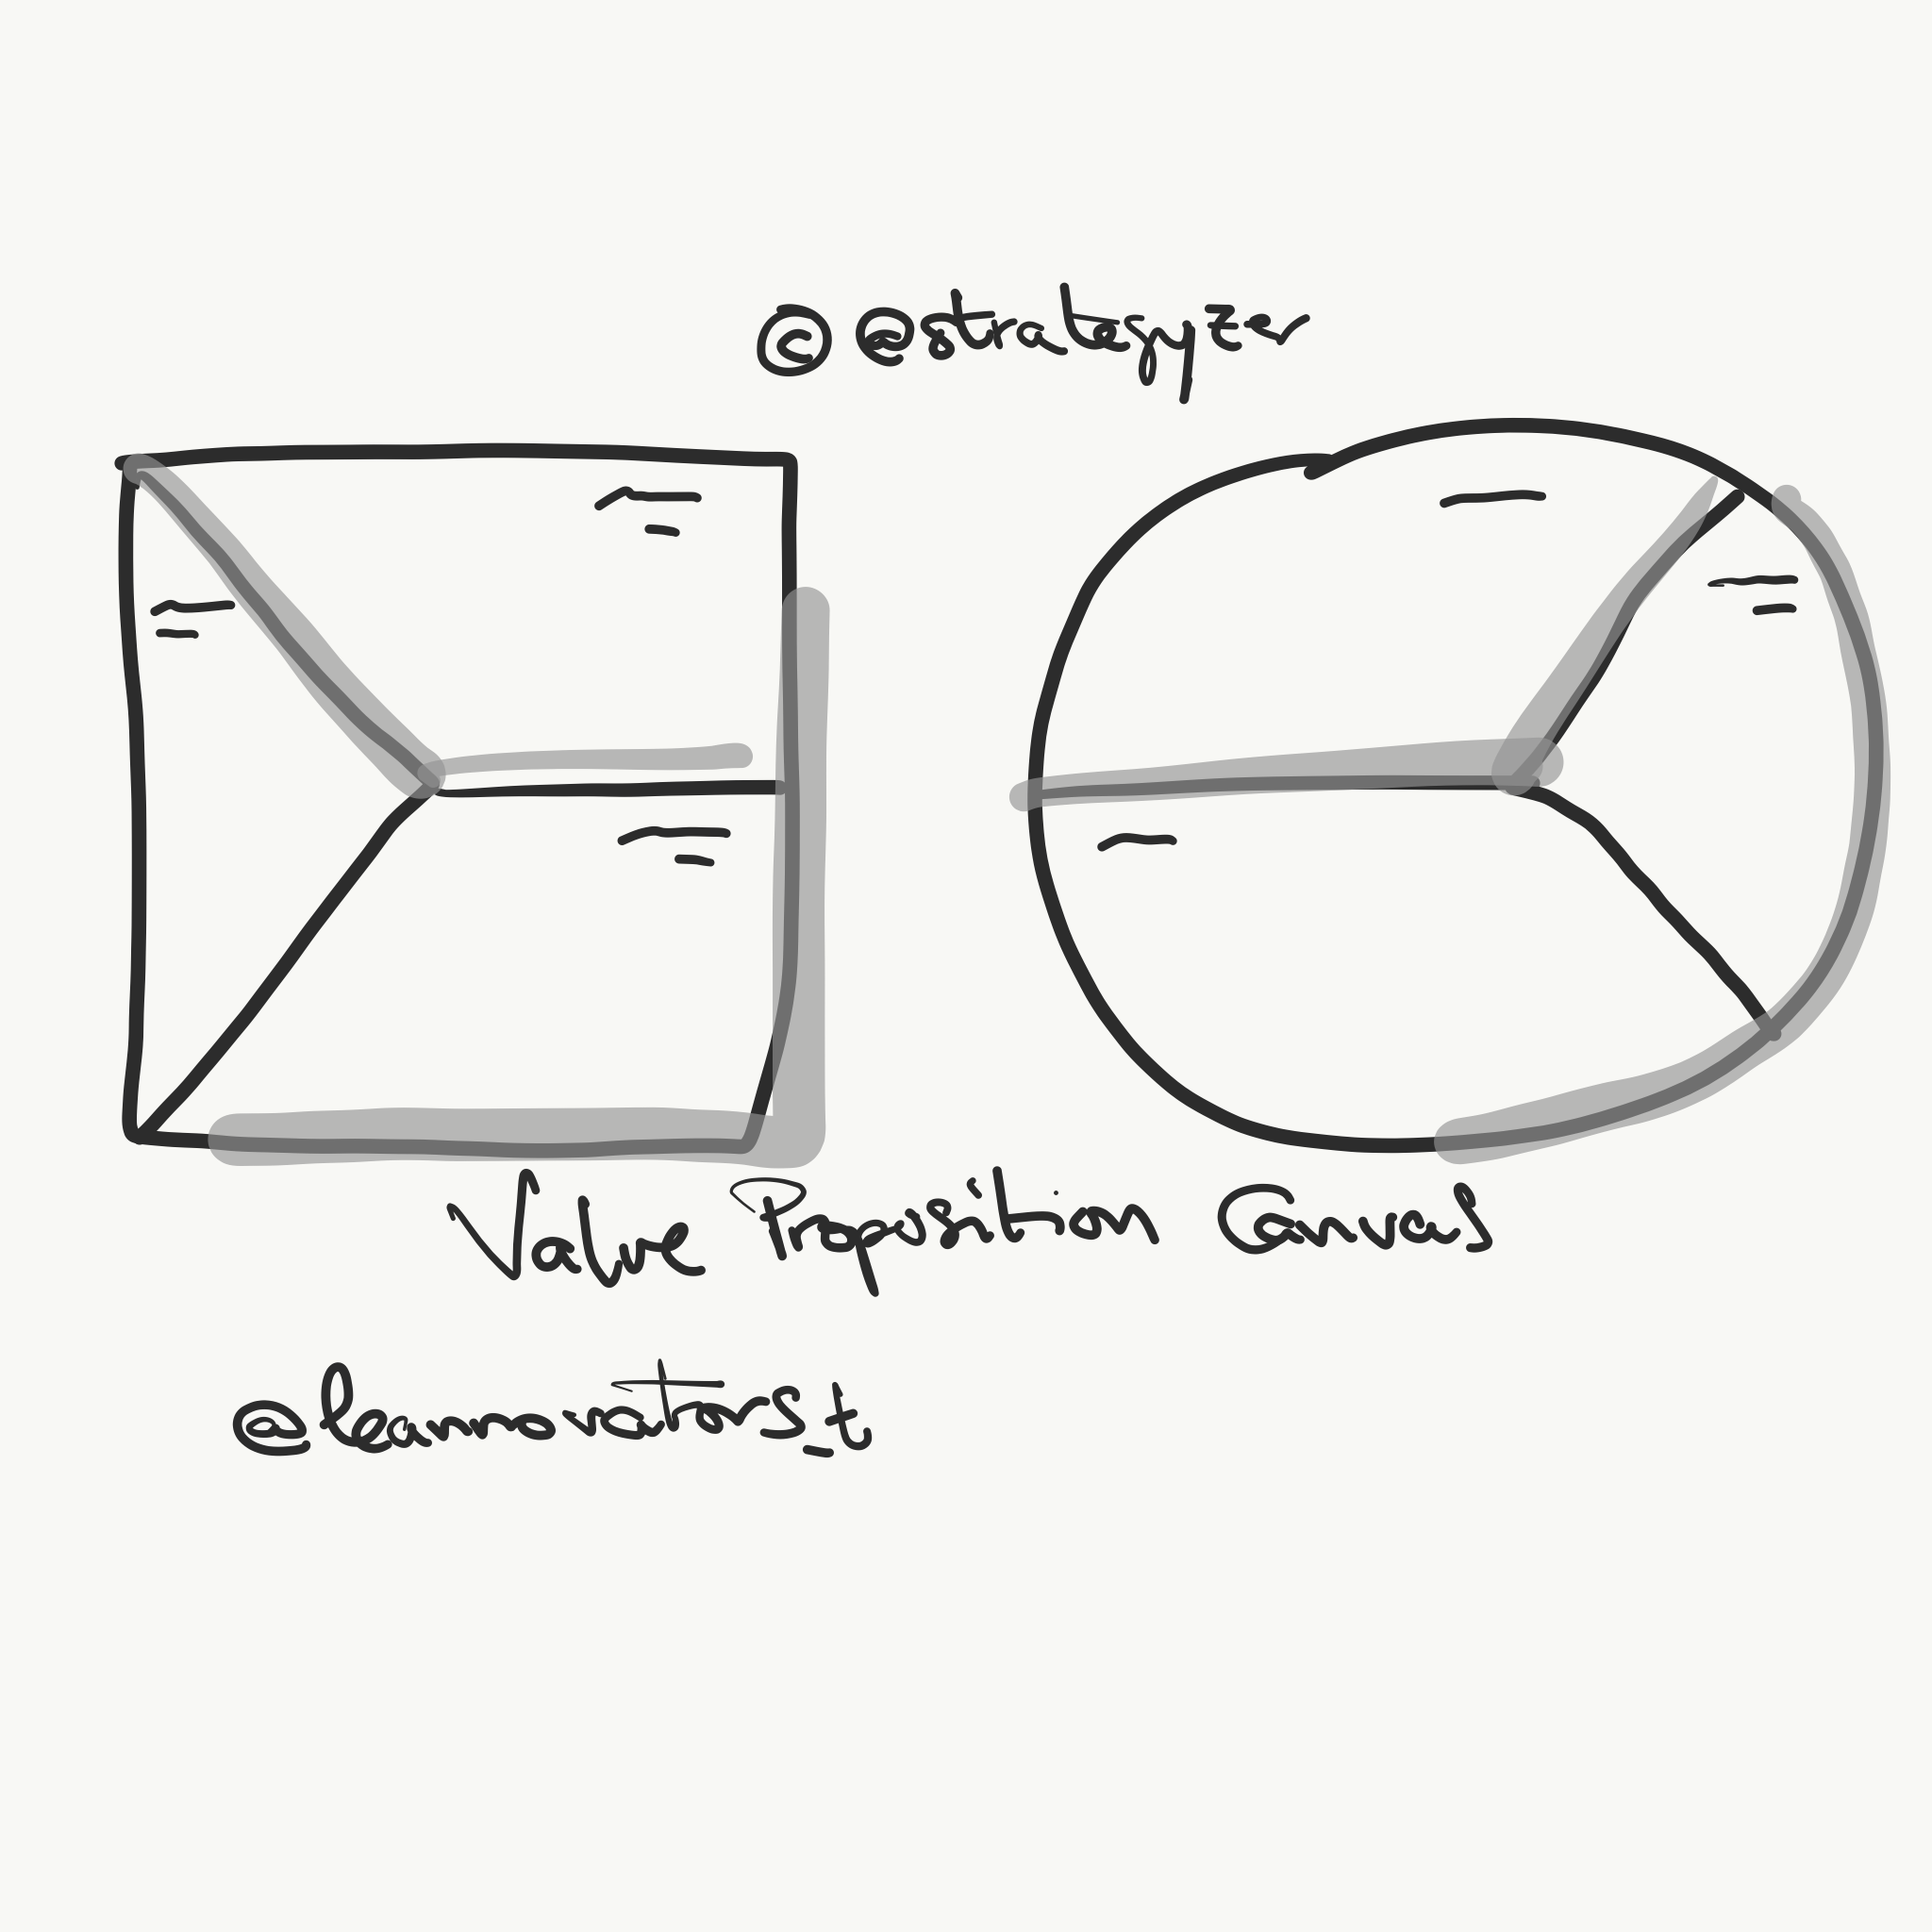 value-proposition-canvas-from-strategyzer